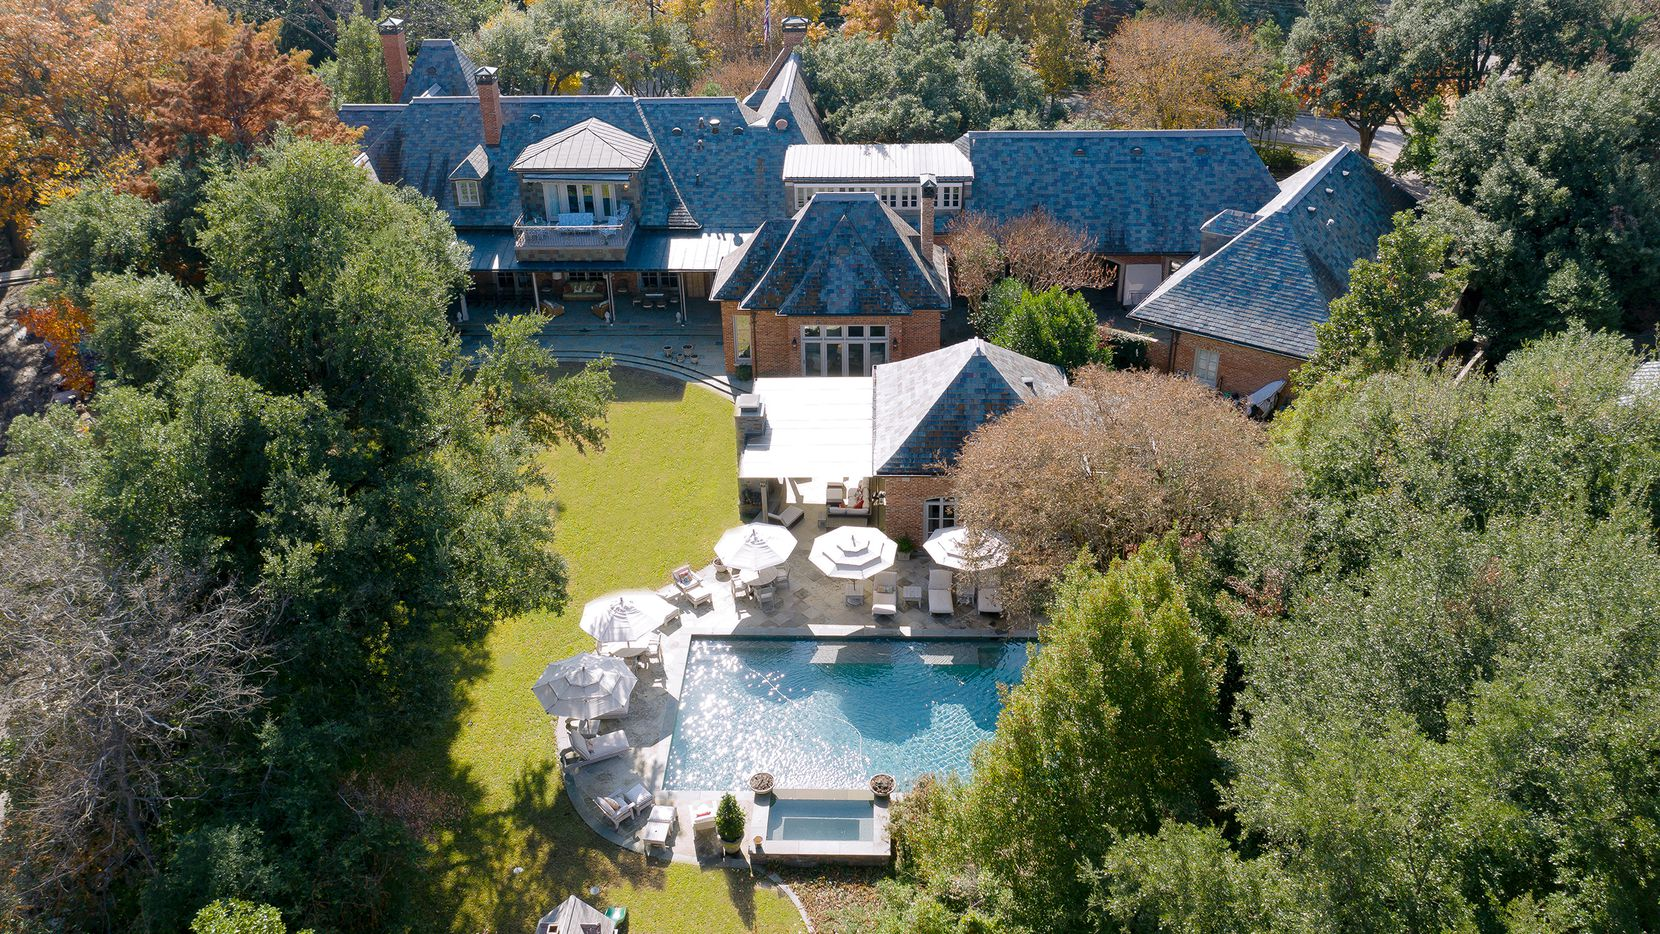 The 11,794-square-foot estate at 6800 Hunters Glen Drive in Volk Estates is offered for $14,950,000.